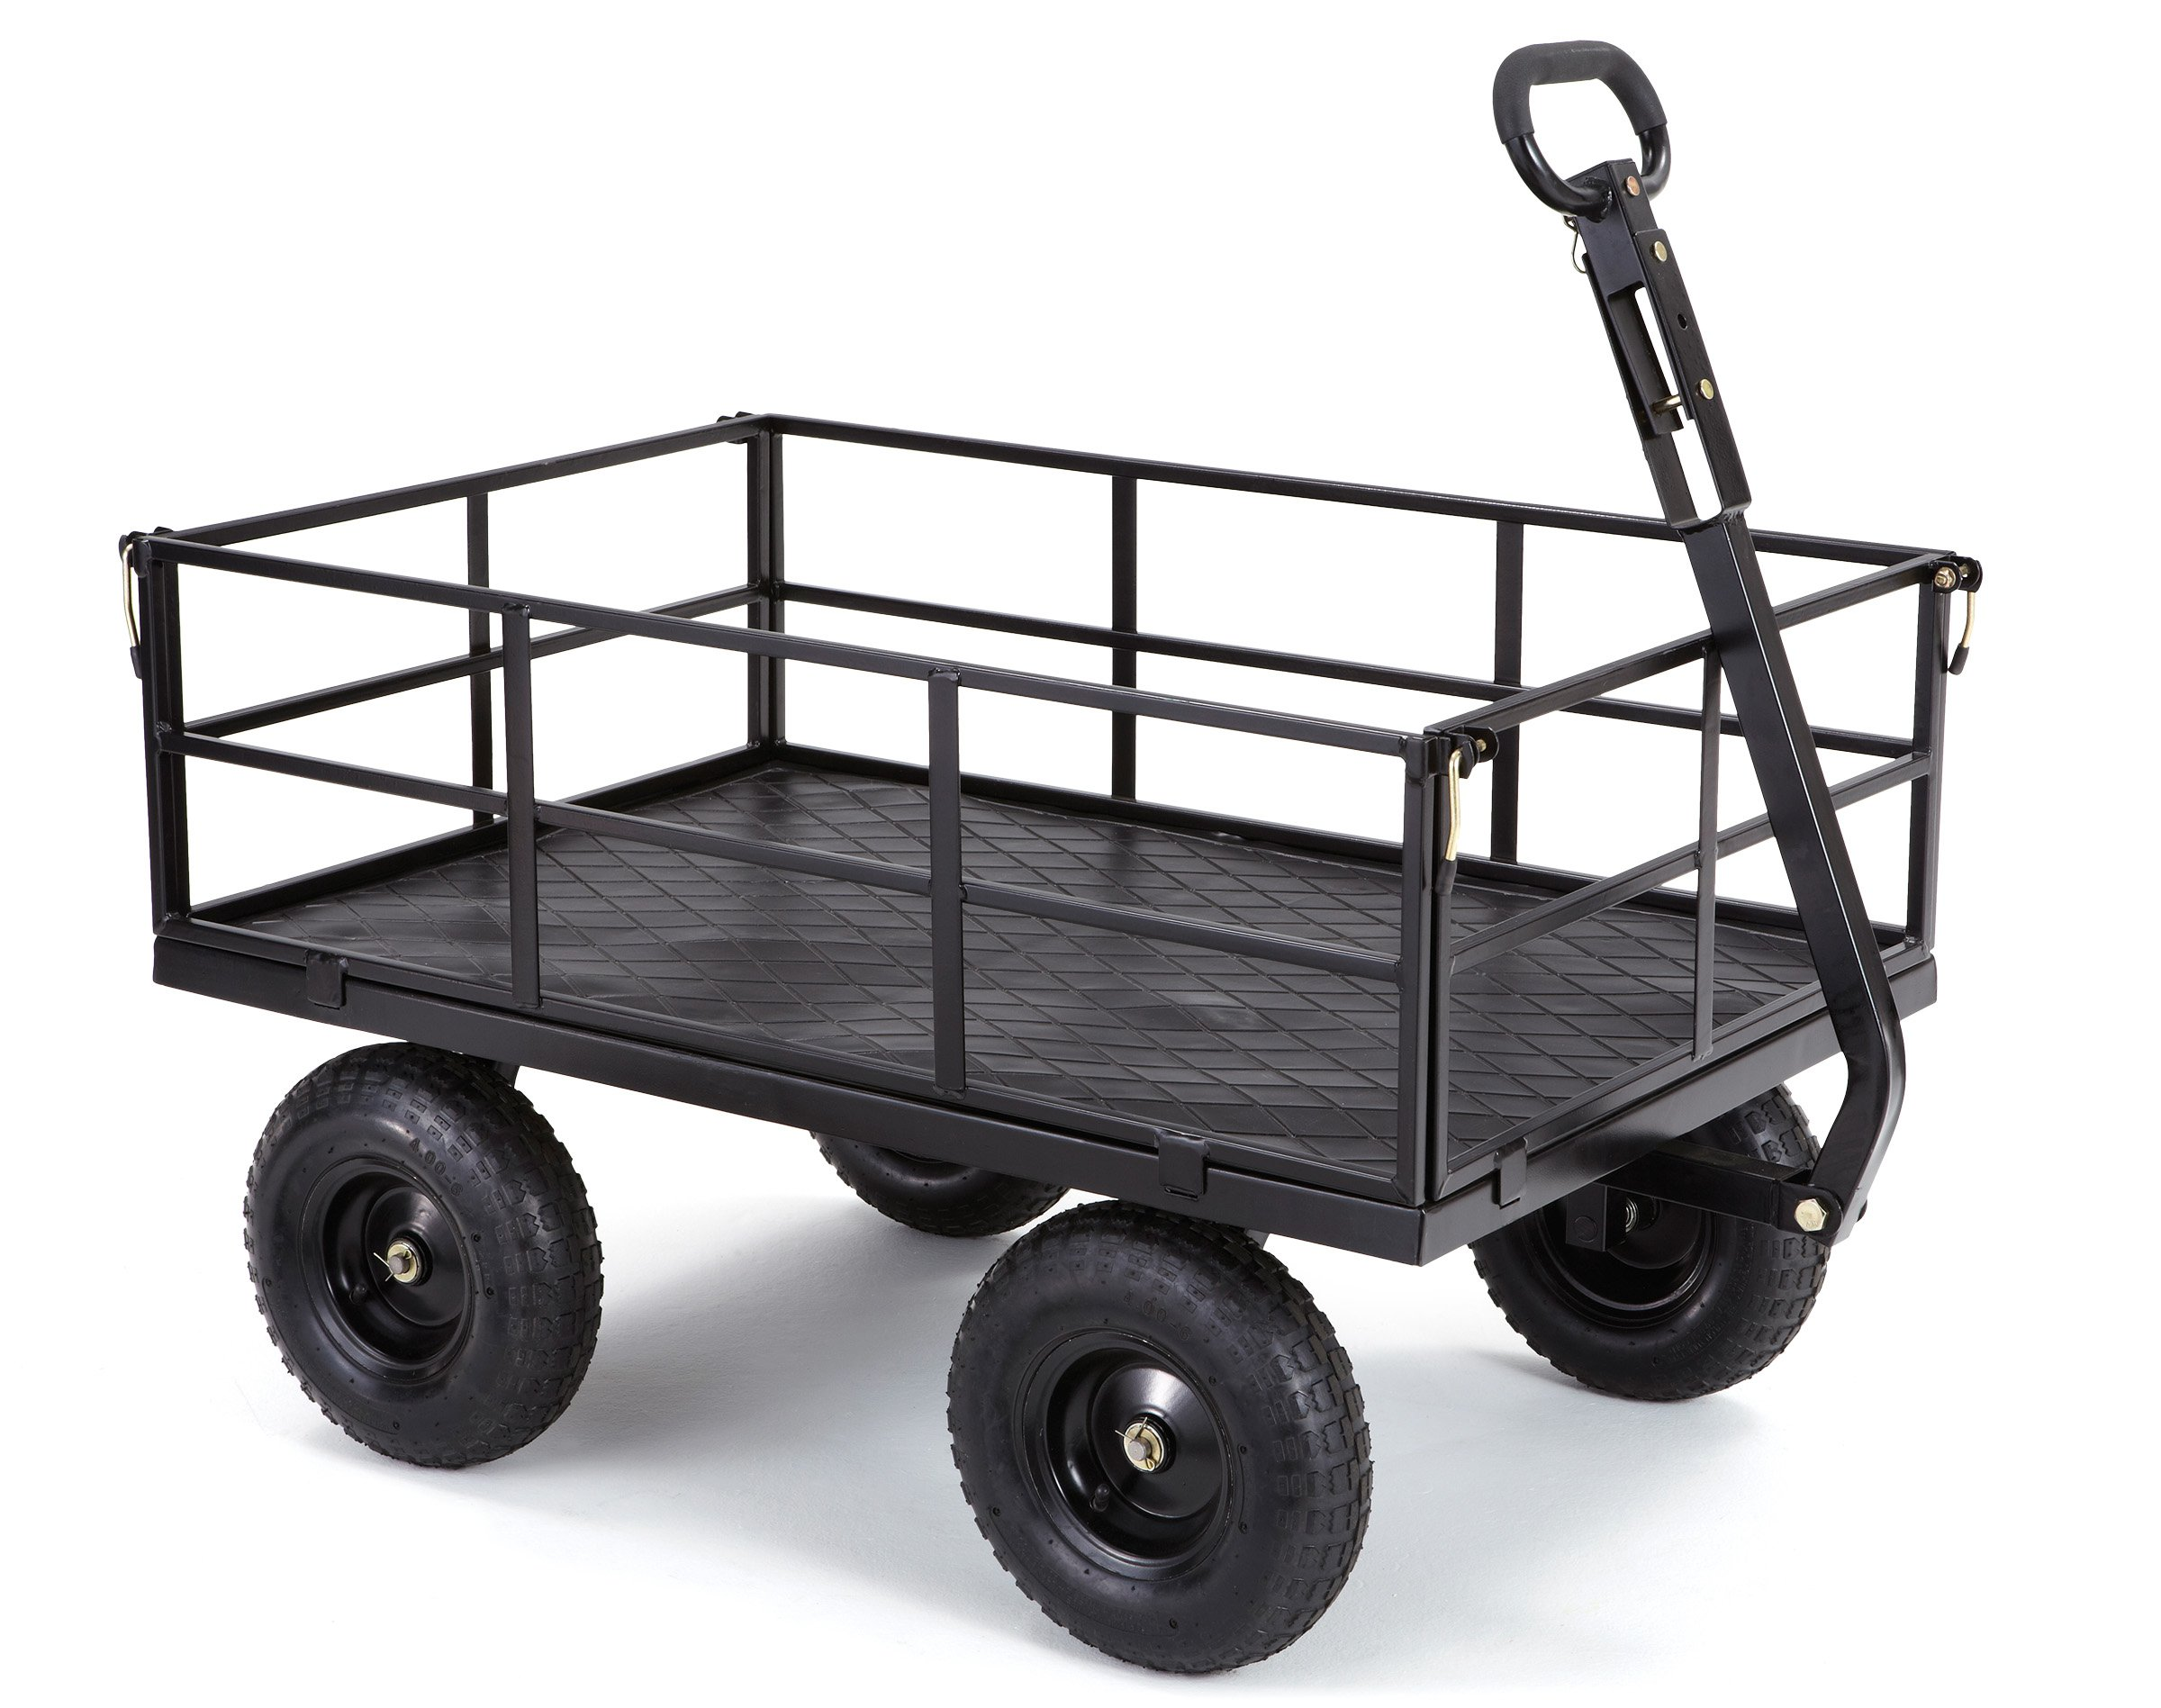 Gorilla Carts GOR1200-COM Heavy-Duty Steel Utility Cart with Removable Sides and 13'' Tires, 1200-lbs. Capacity, Black